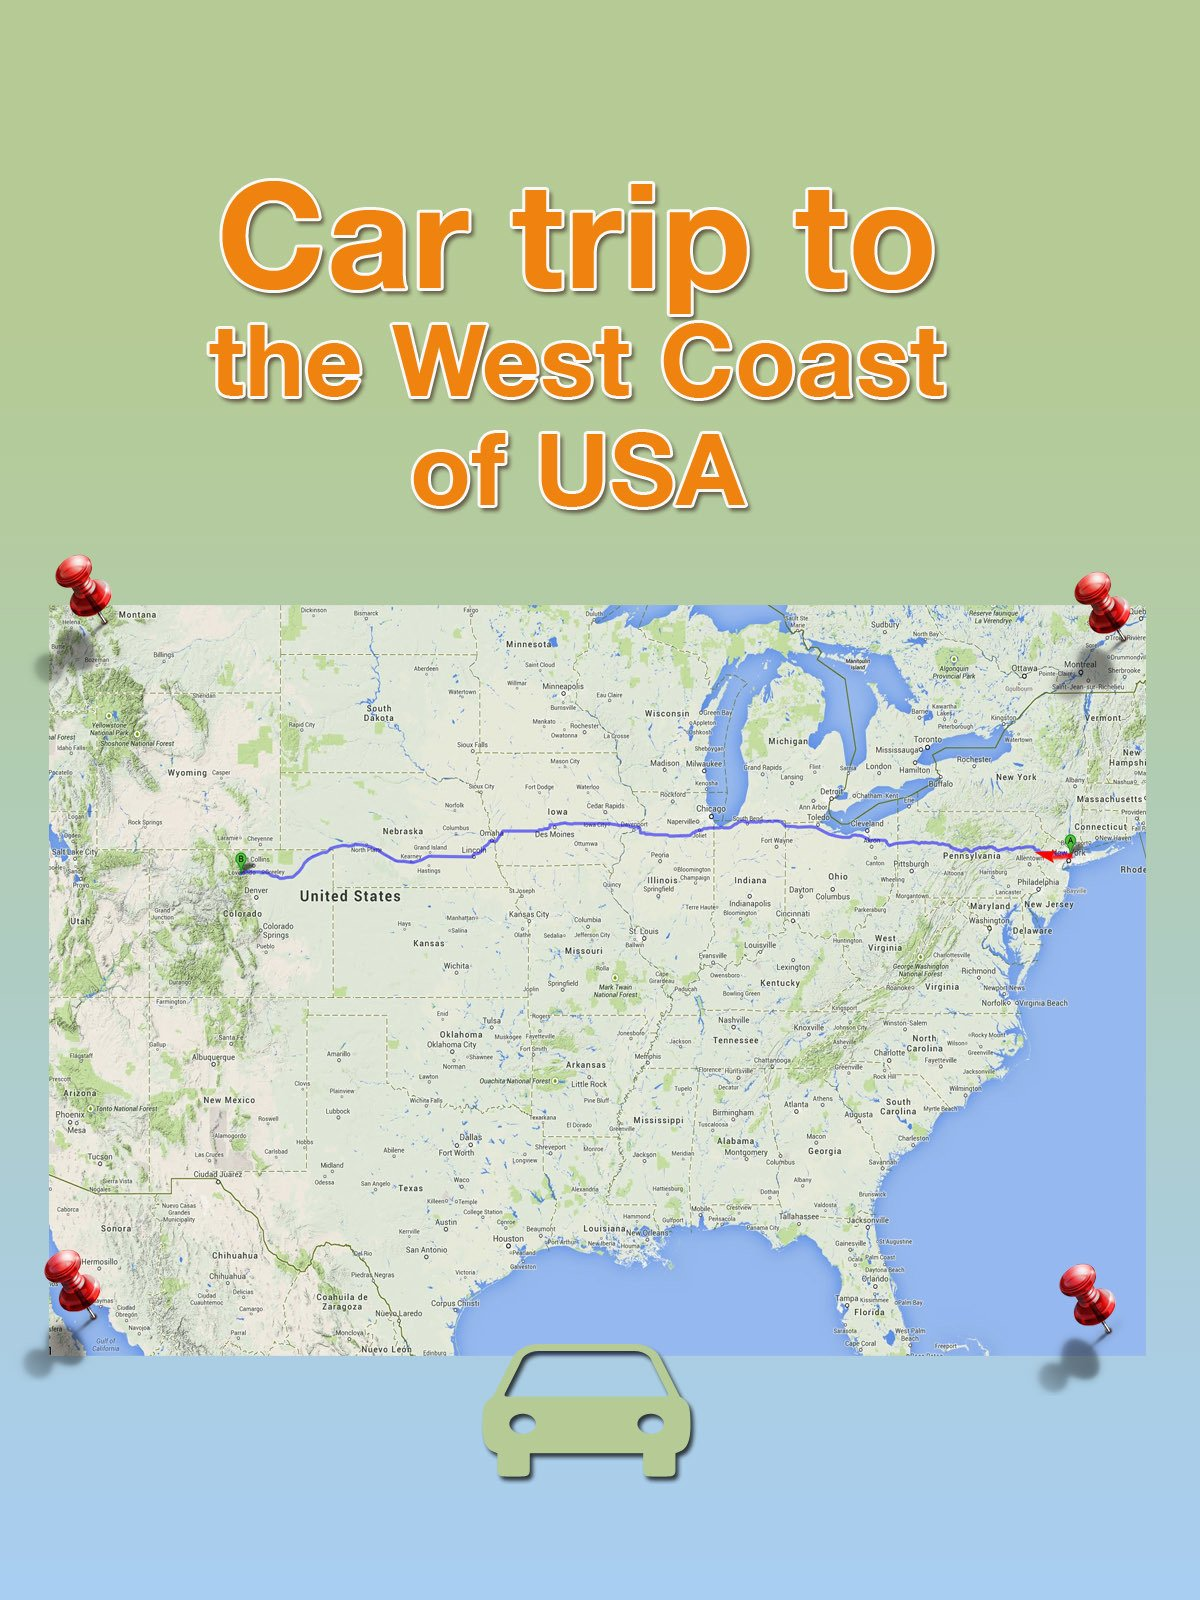 Car trip to the West coast of USA